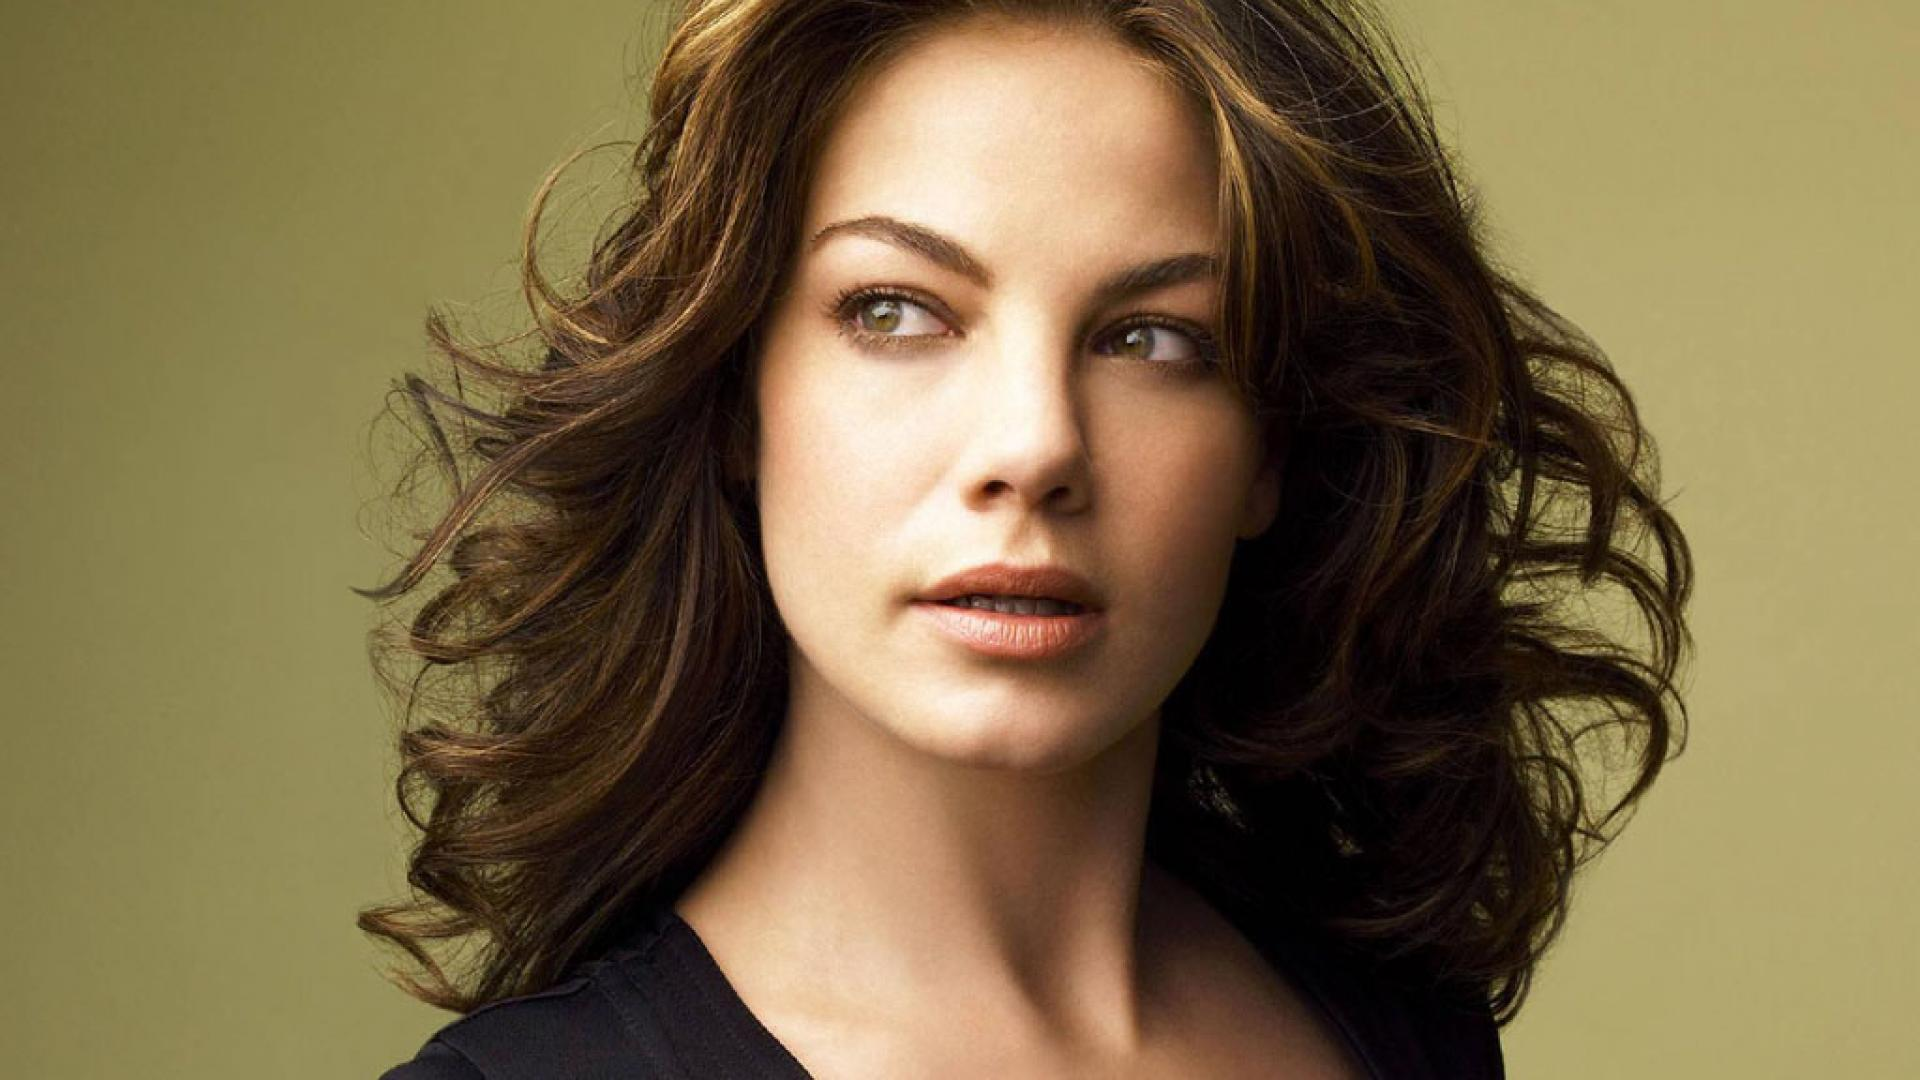 Michelle Monaghan Wallpapers Images Photos Pictures Backgrounds 1920x1080